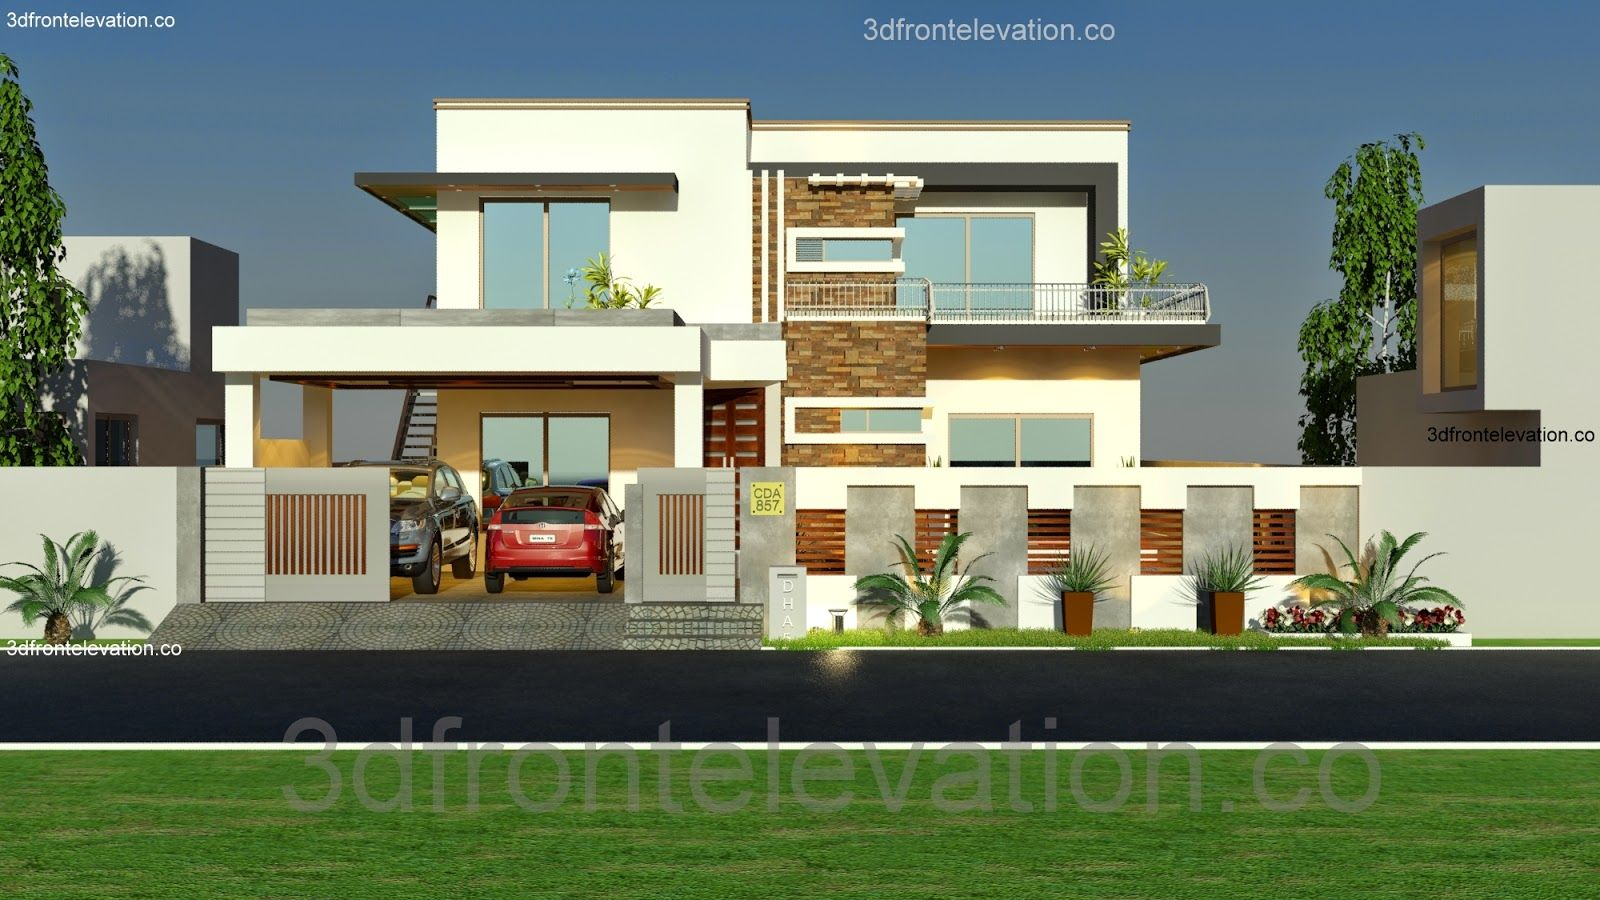 3d front elevation com 1 kanal house plan layout 50 x 90 3d front elevation cda islamabad pakistan